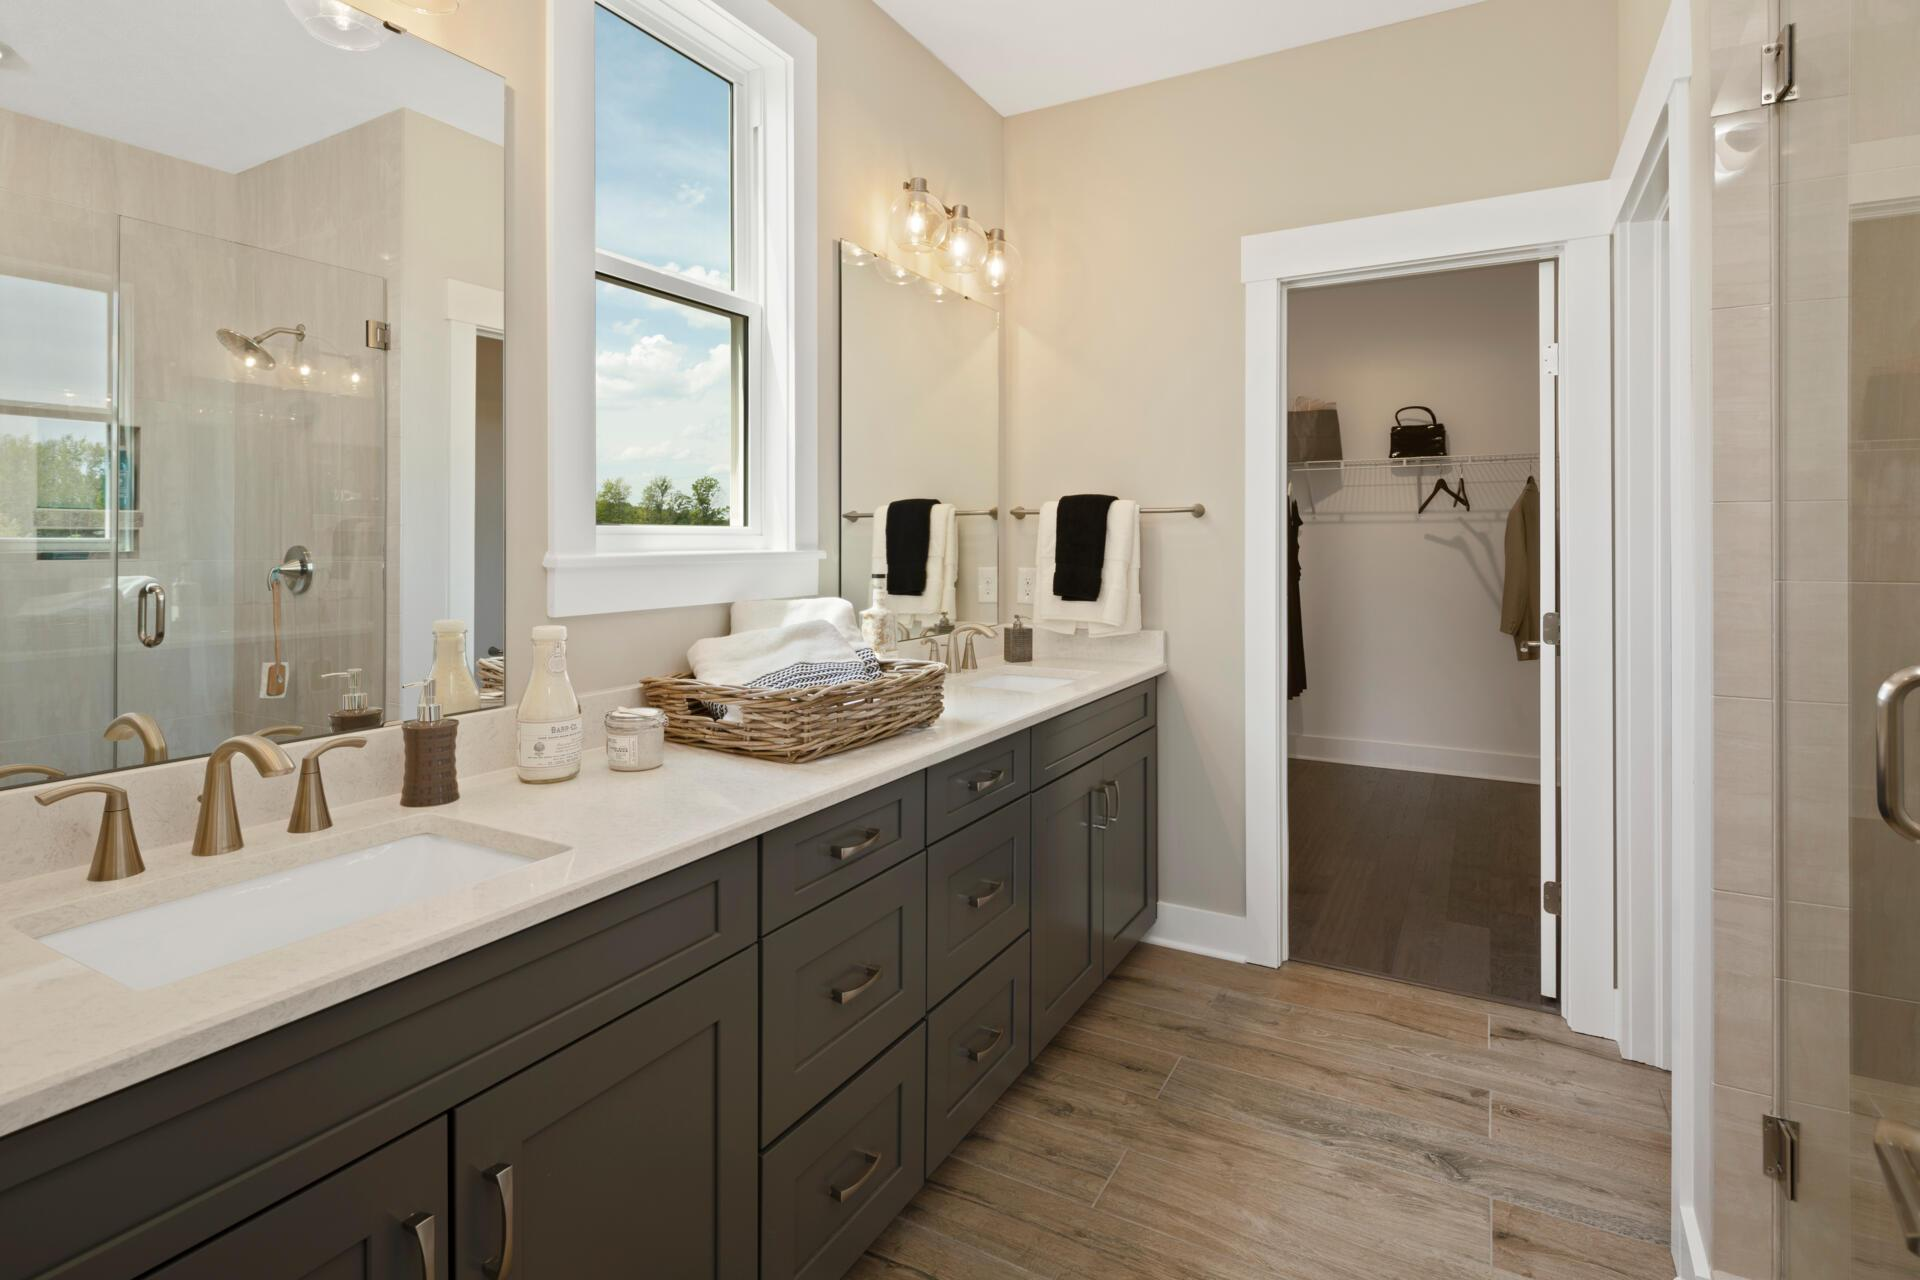 Bathroom featured in the Sarasota By Drees Homes in Cleveland, OH